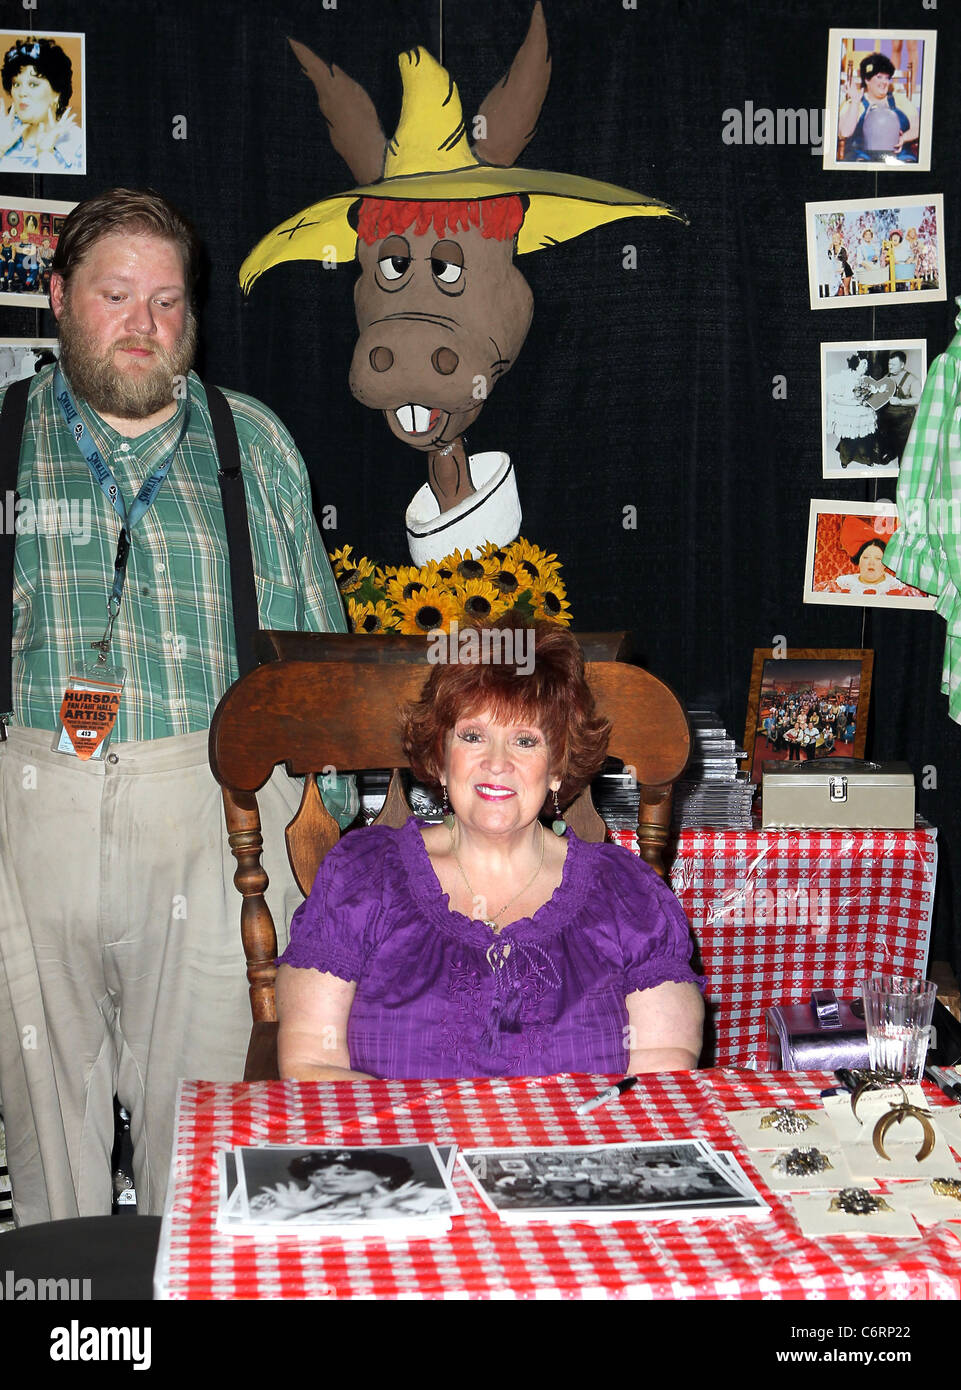 Lulu Roman Meet And Greet And Autograph Session At The 2010 Cma